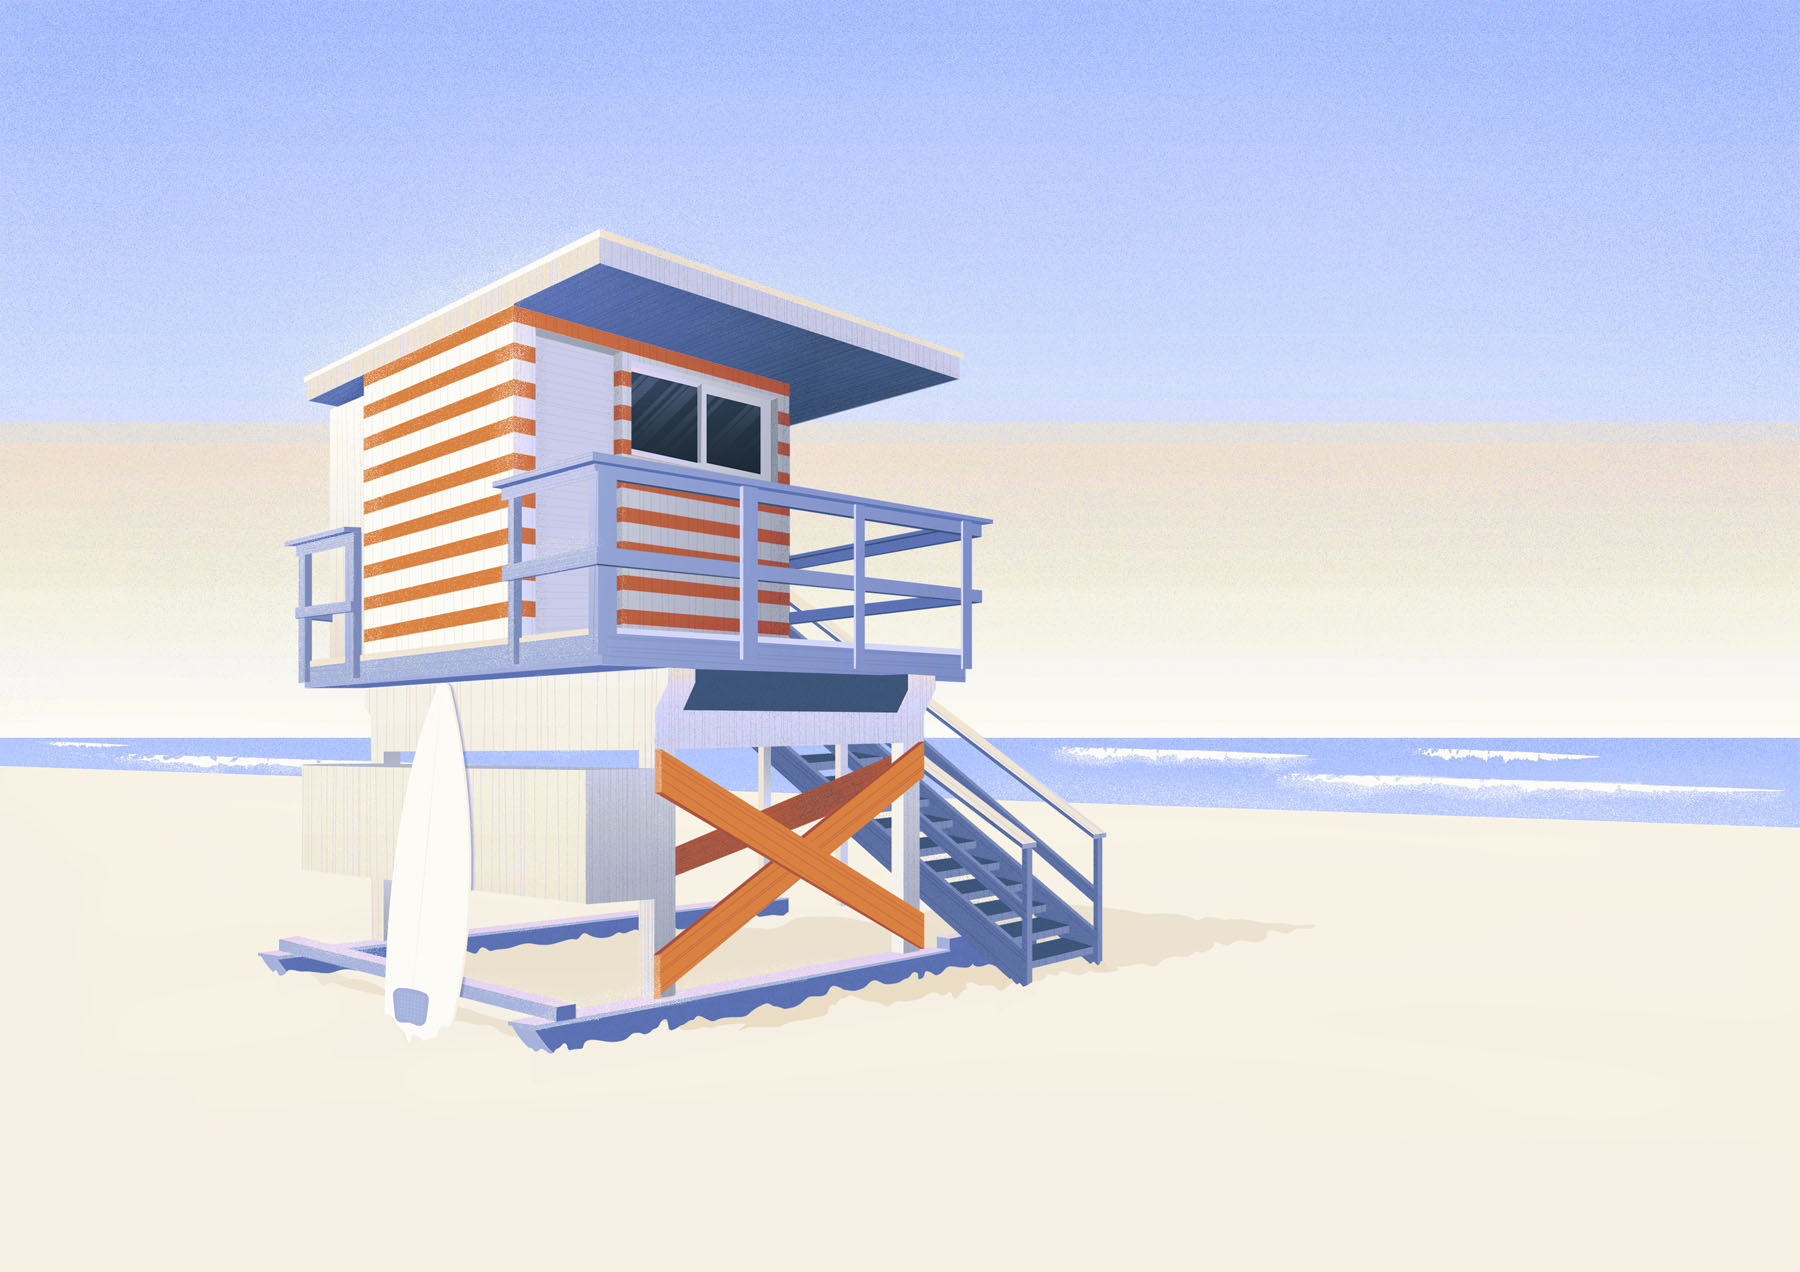 Vector illustration of lifeguard stand.